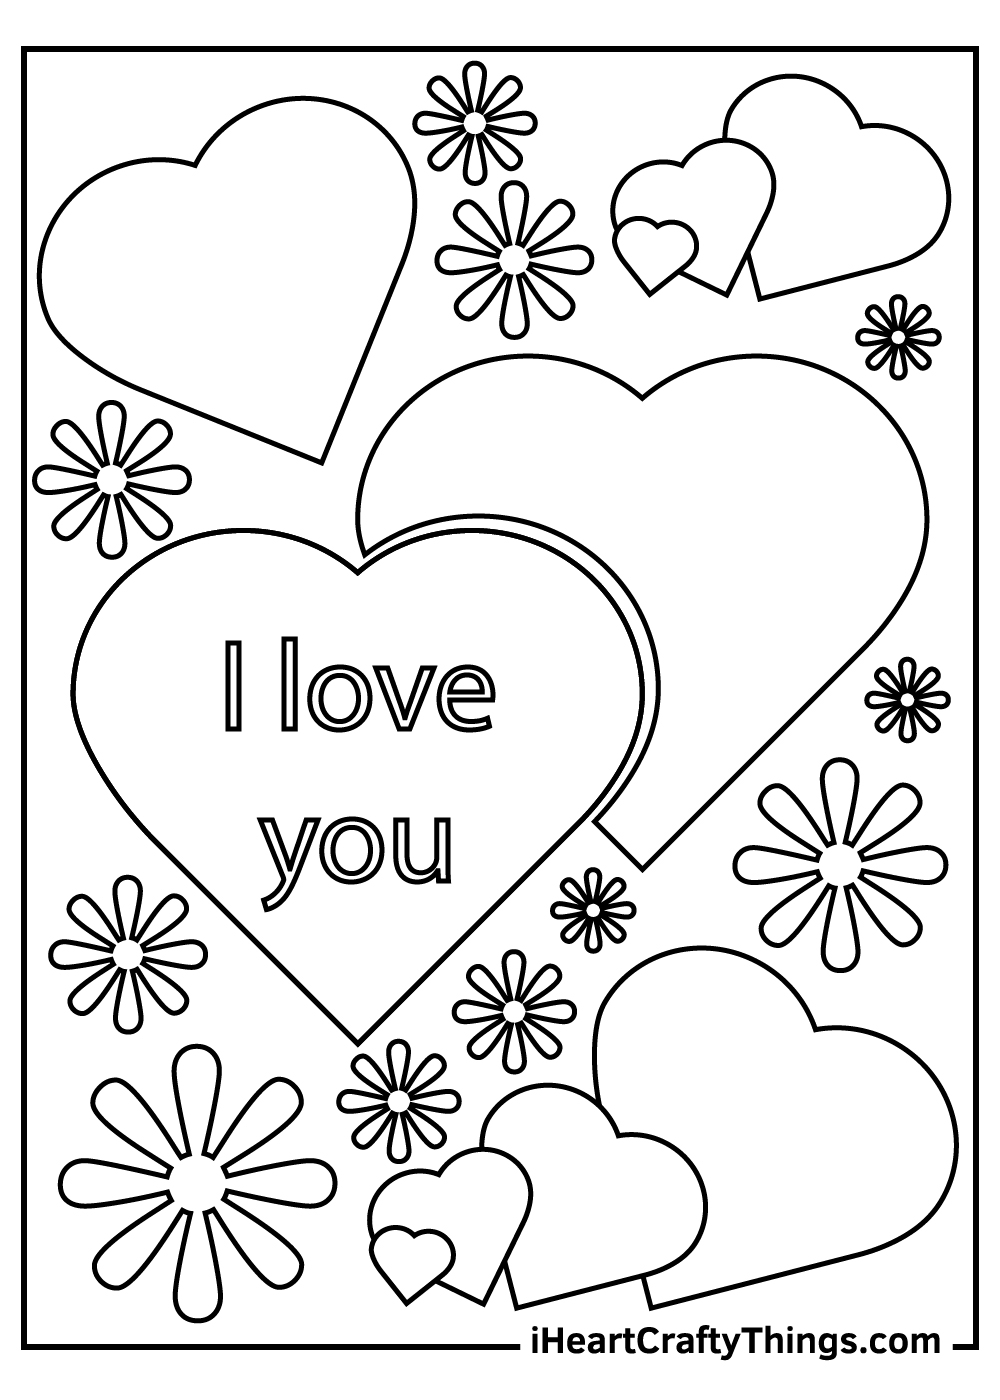 I Love You heart coloring pages free printable